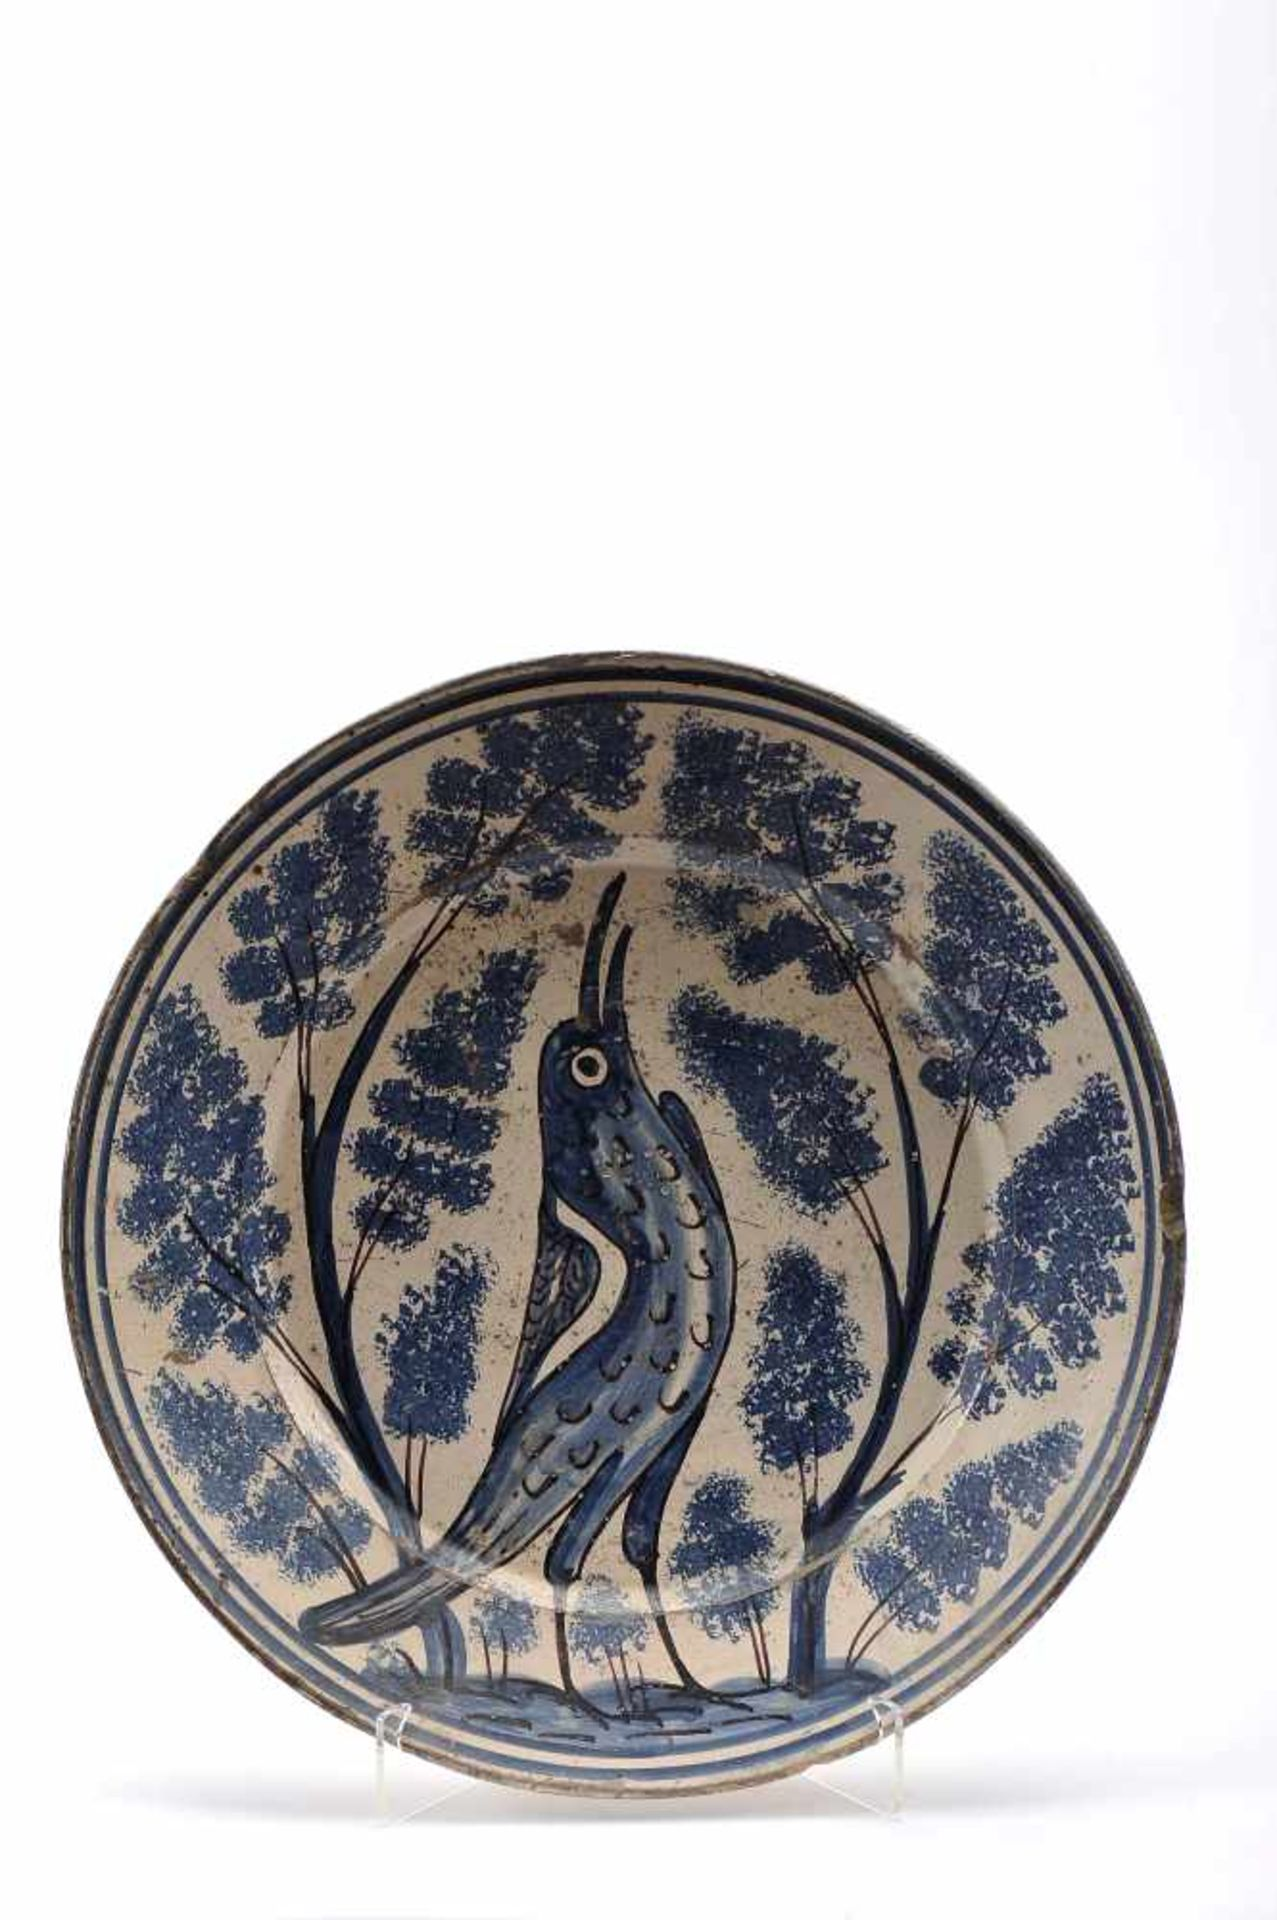 """Los 48 - A DishA Dish, Coimbra's faience, blue and vinous decoration known as """"Brioso"""", """"Bird chirping..."""